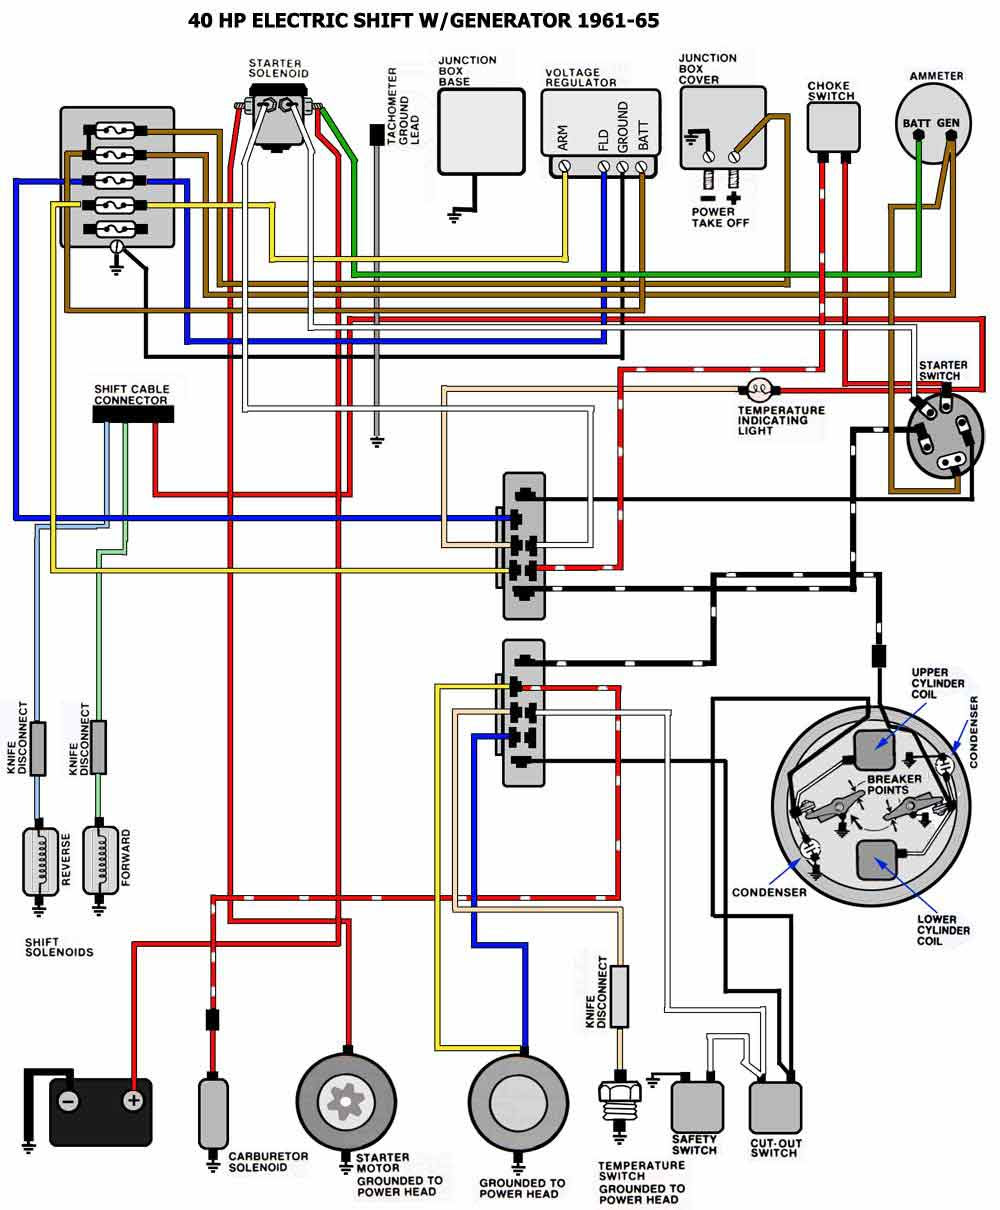 Diagram 40 Hp Johnson Wiring Harness Diagram Free Picture Full Version Hd Quality Free Picture Bandiagram Media90 It